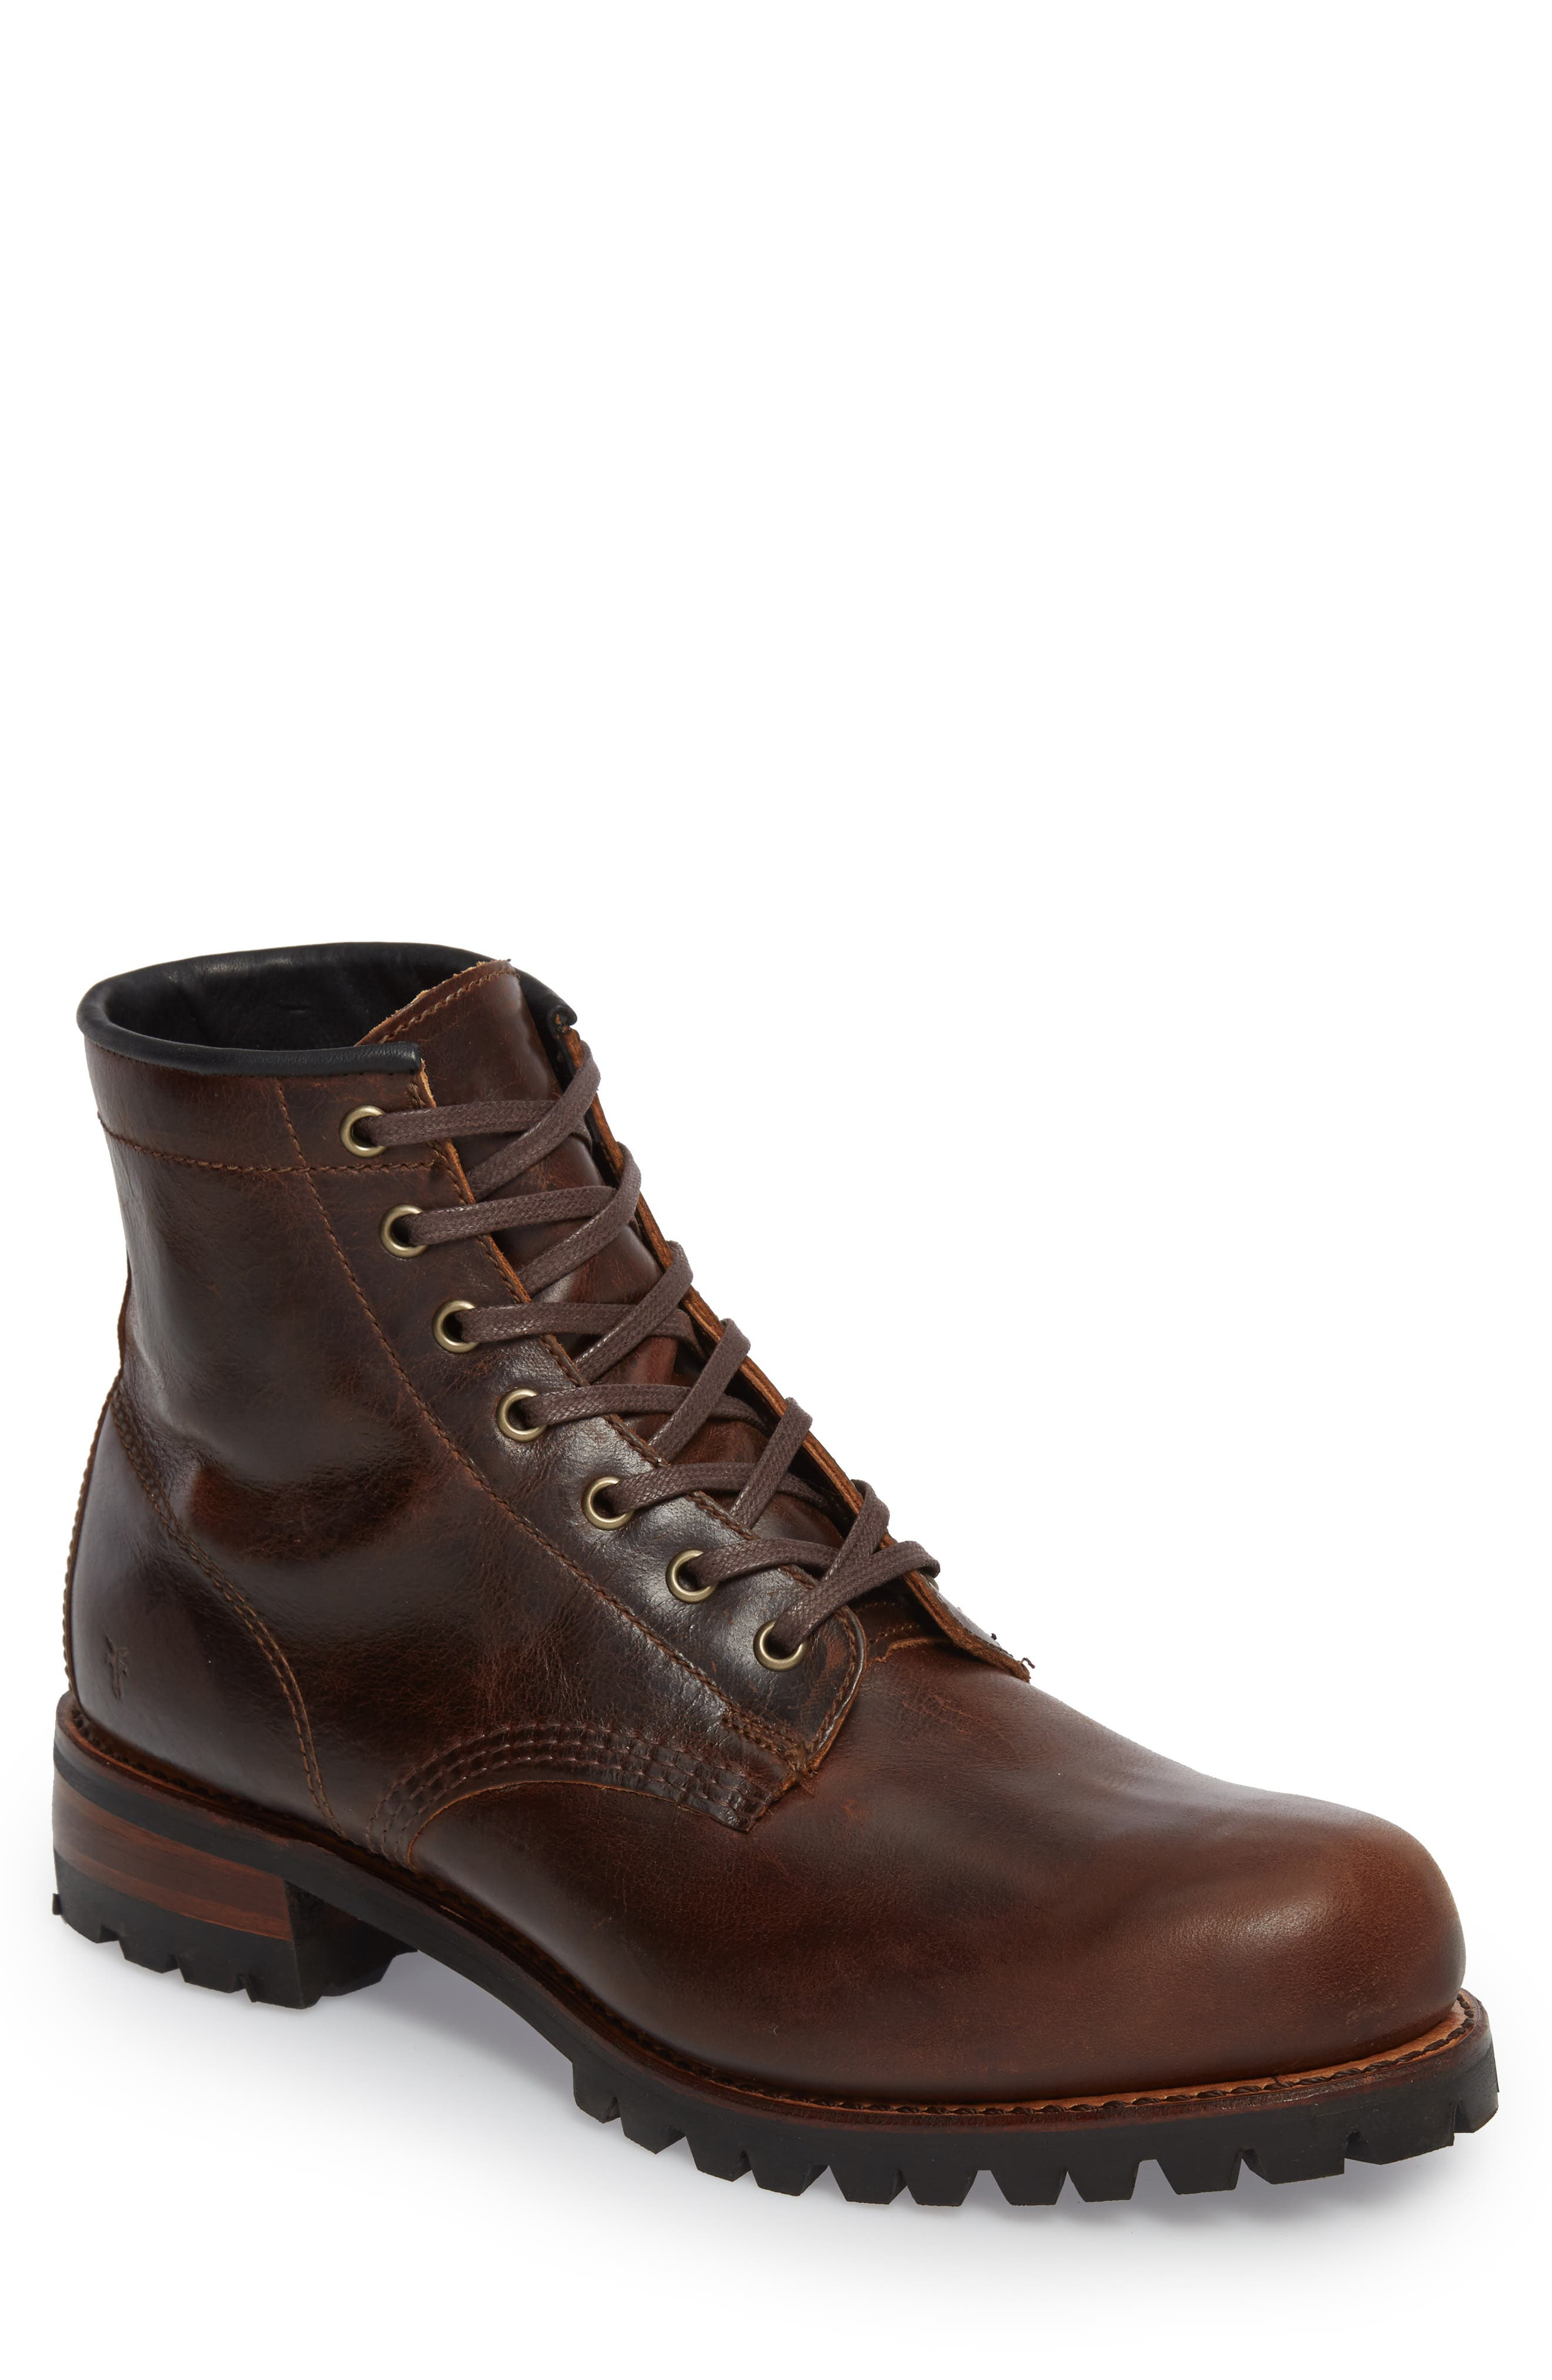 Addison Lace-Up Boot,                         Main,                         color, Dark Brown Leather